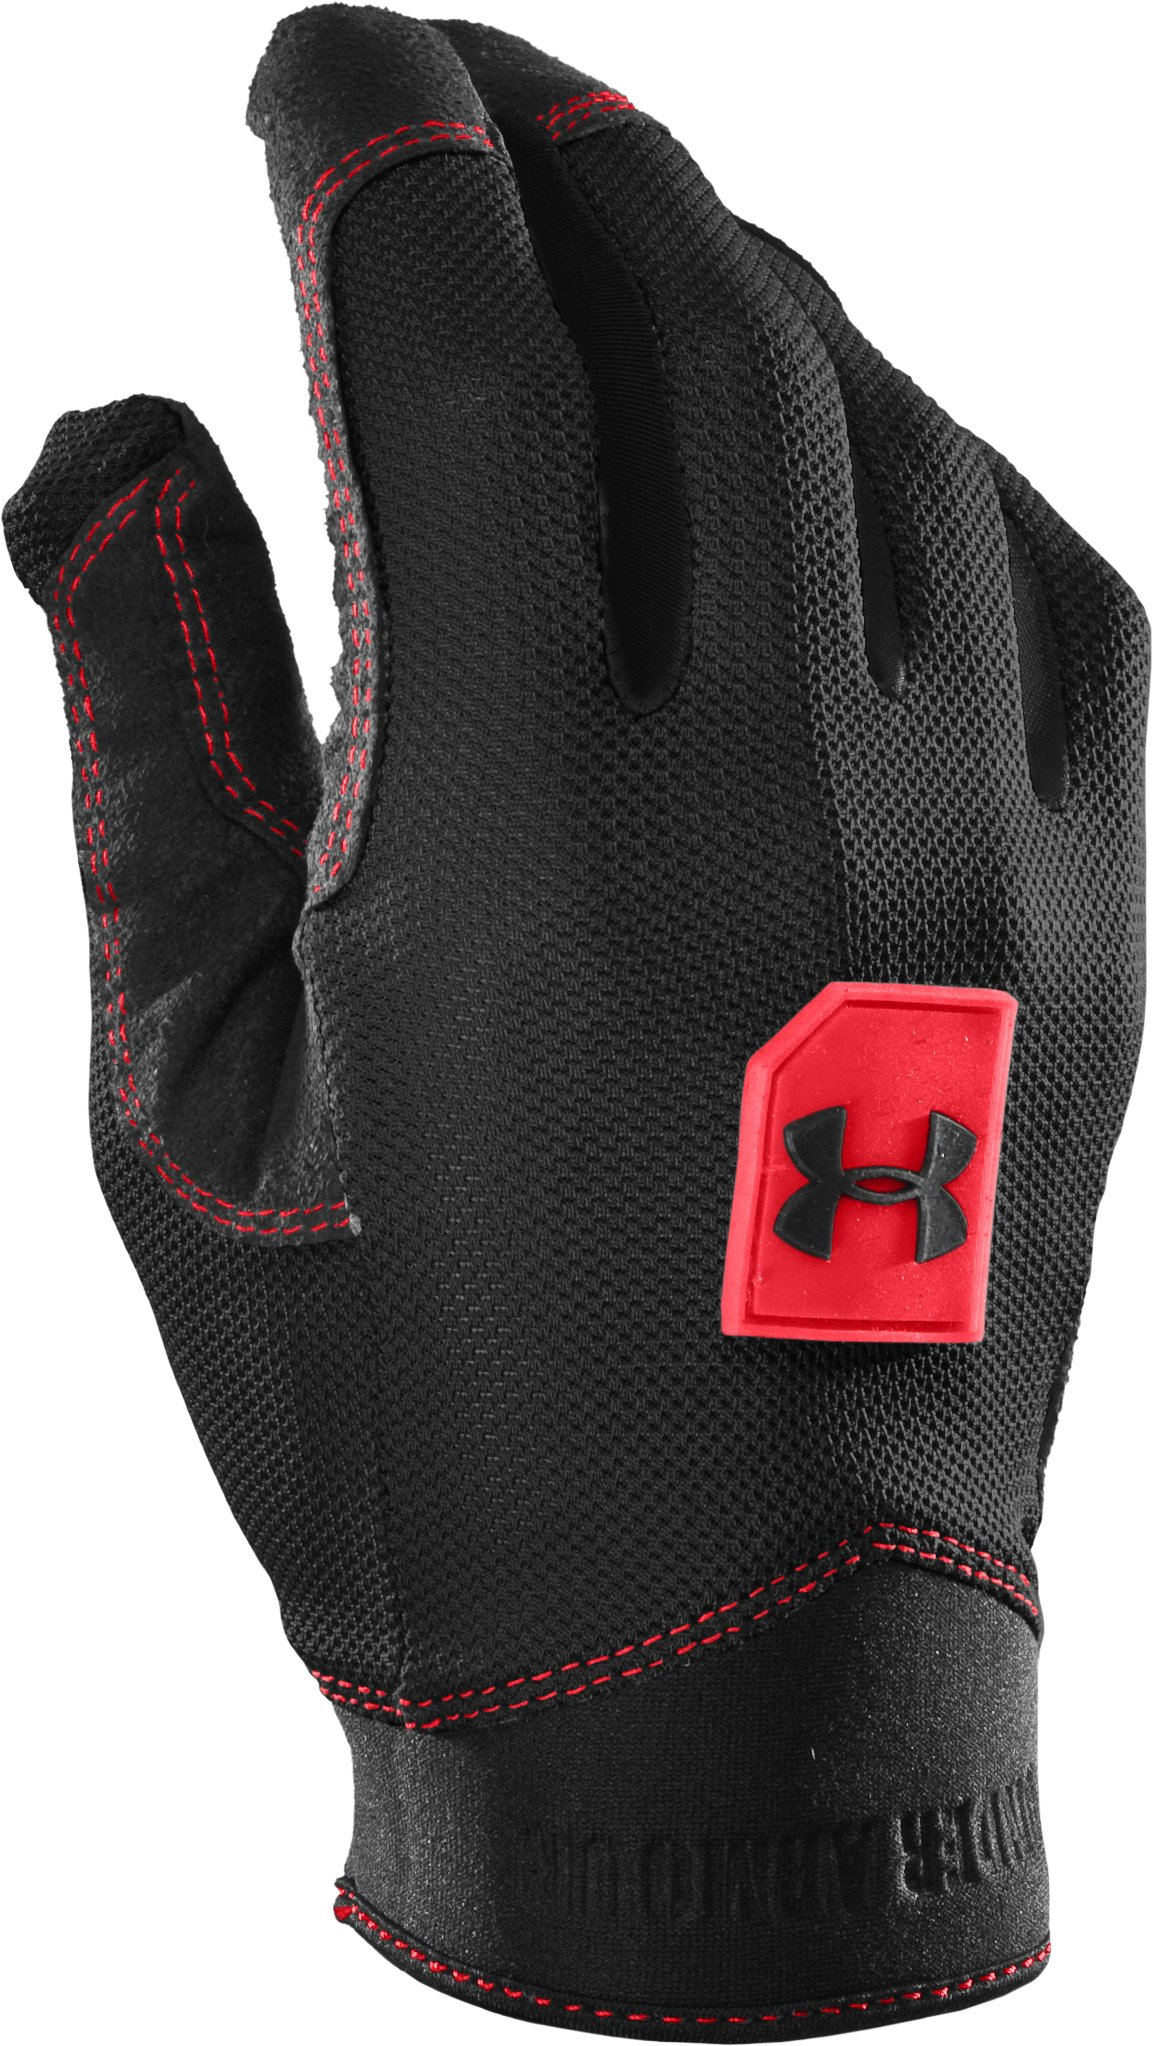 Ventilator Gloves, Black , undefined